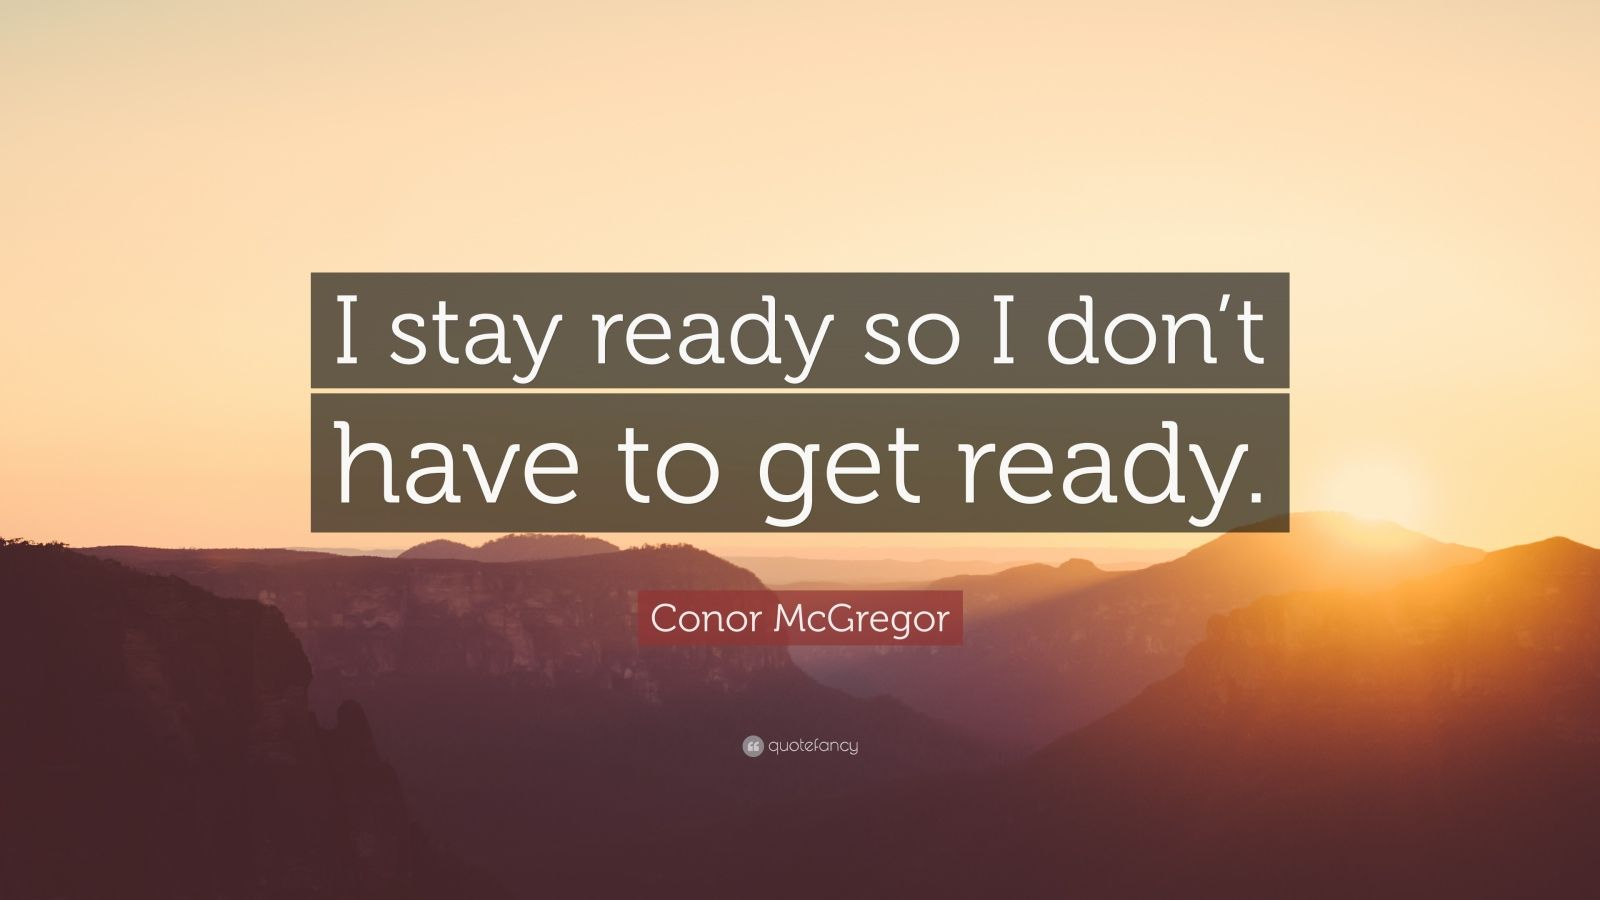 Conor Mcgregor Quote Wallpaper Conor Mcgregor Quote I Stay Ready So I Don T Have To Get